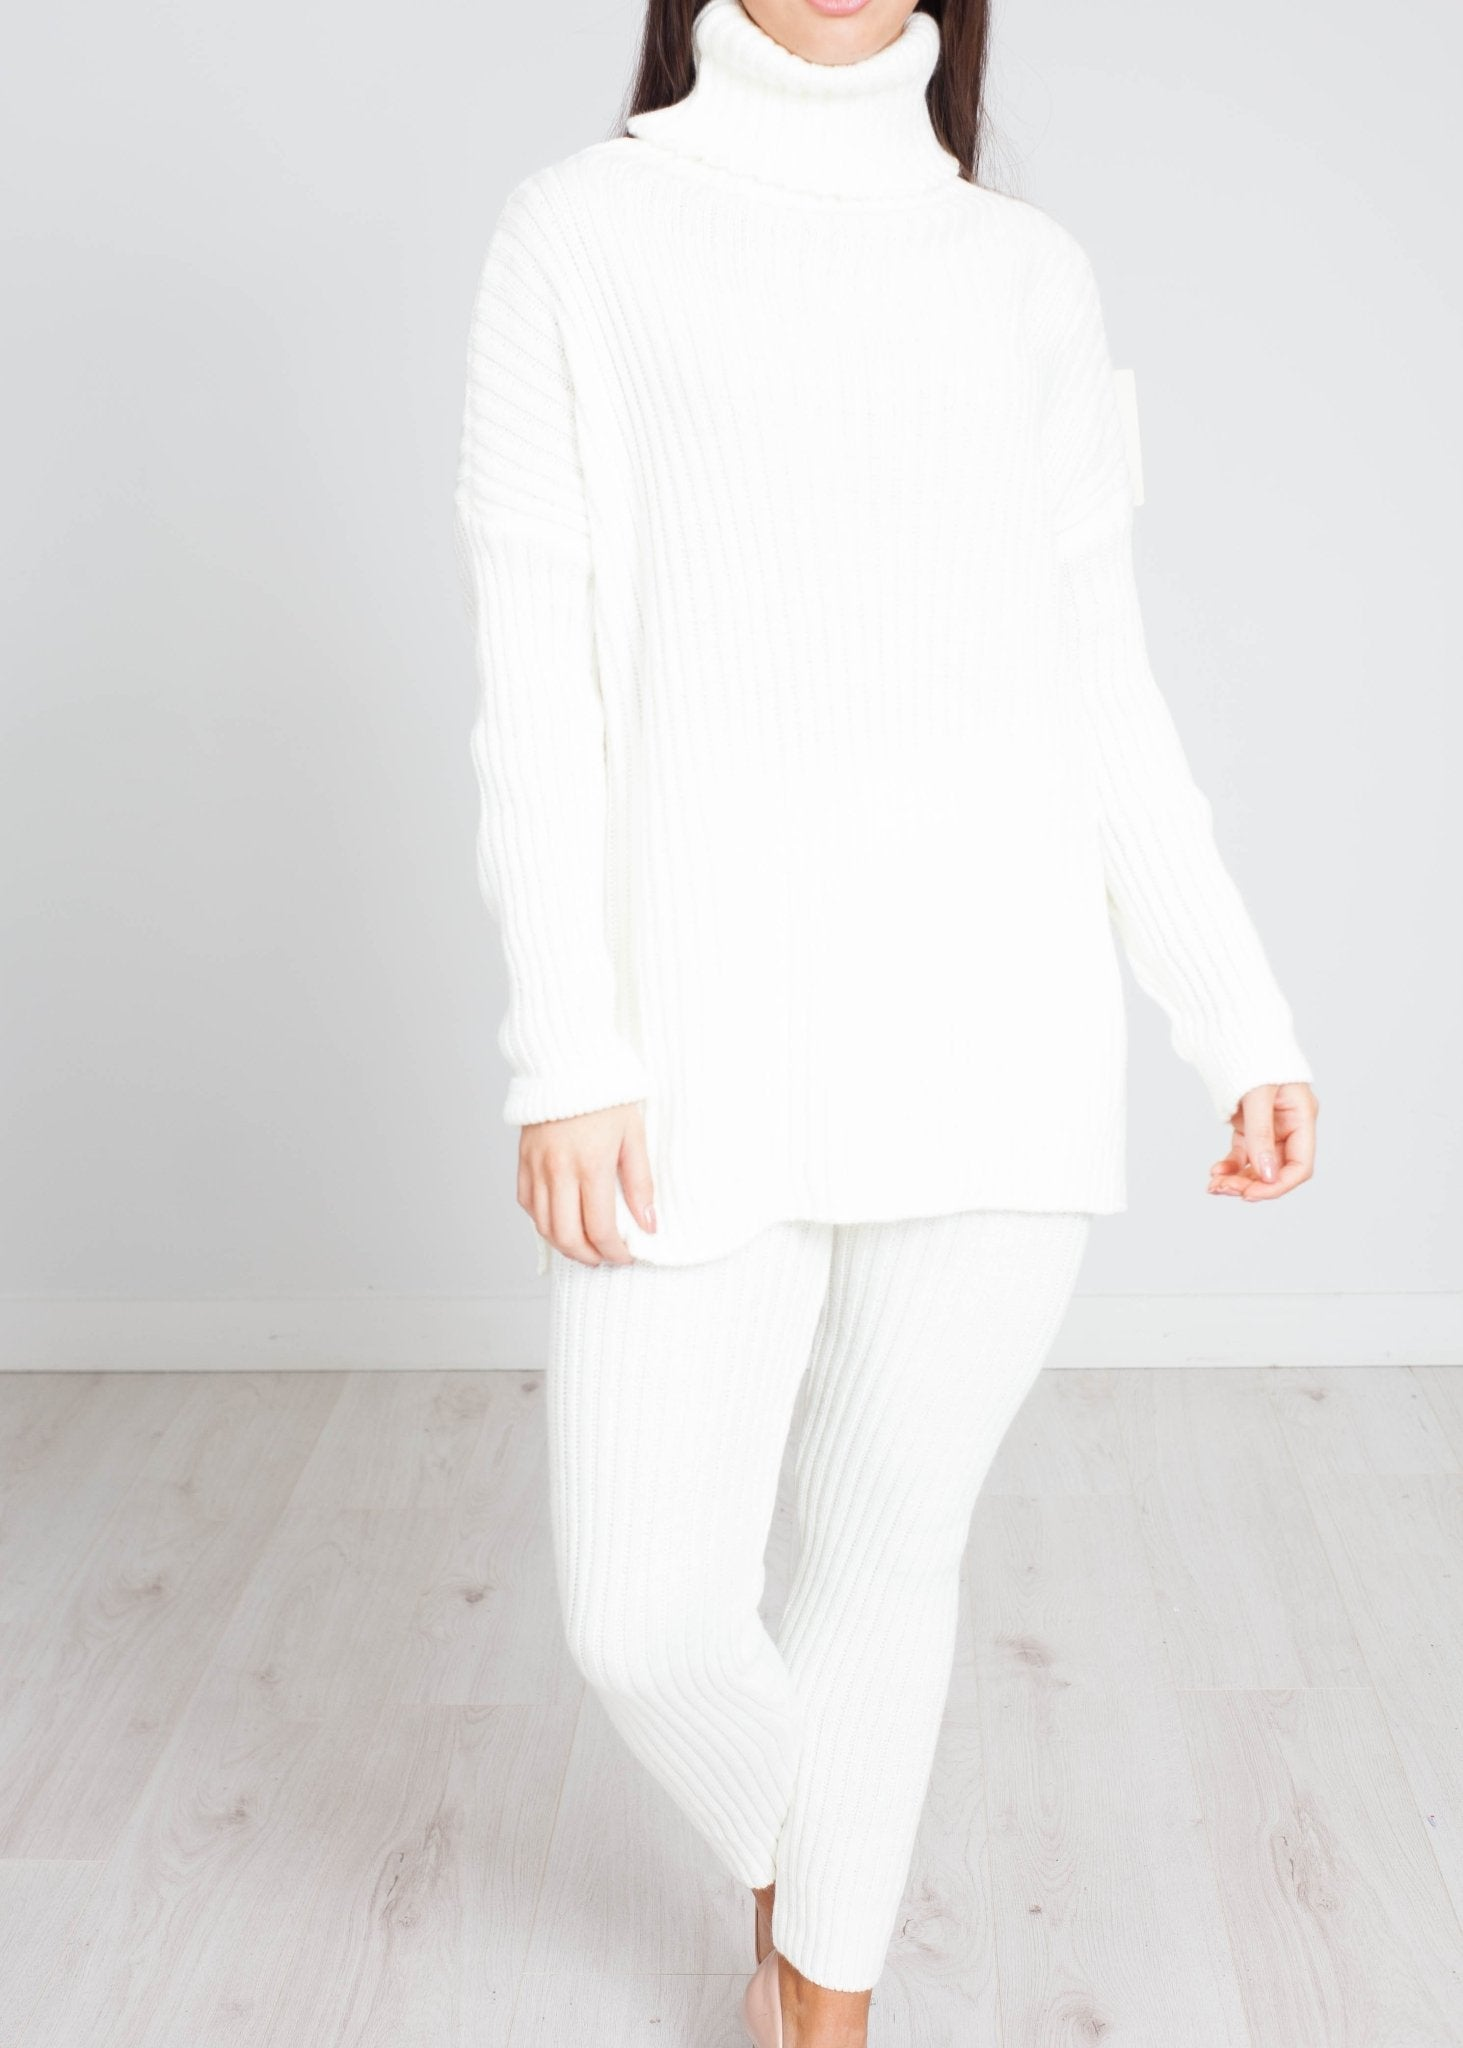 Indie Polo Knit Lounge Set In Winter White - The Walk in Wardrobe